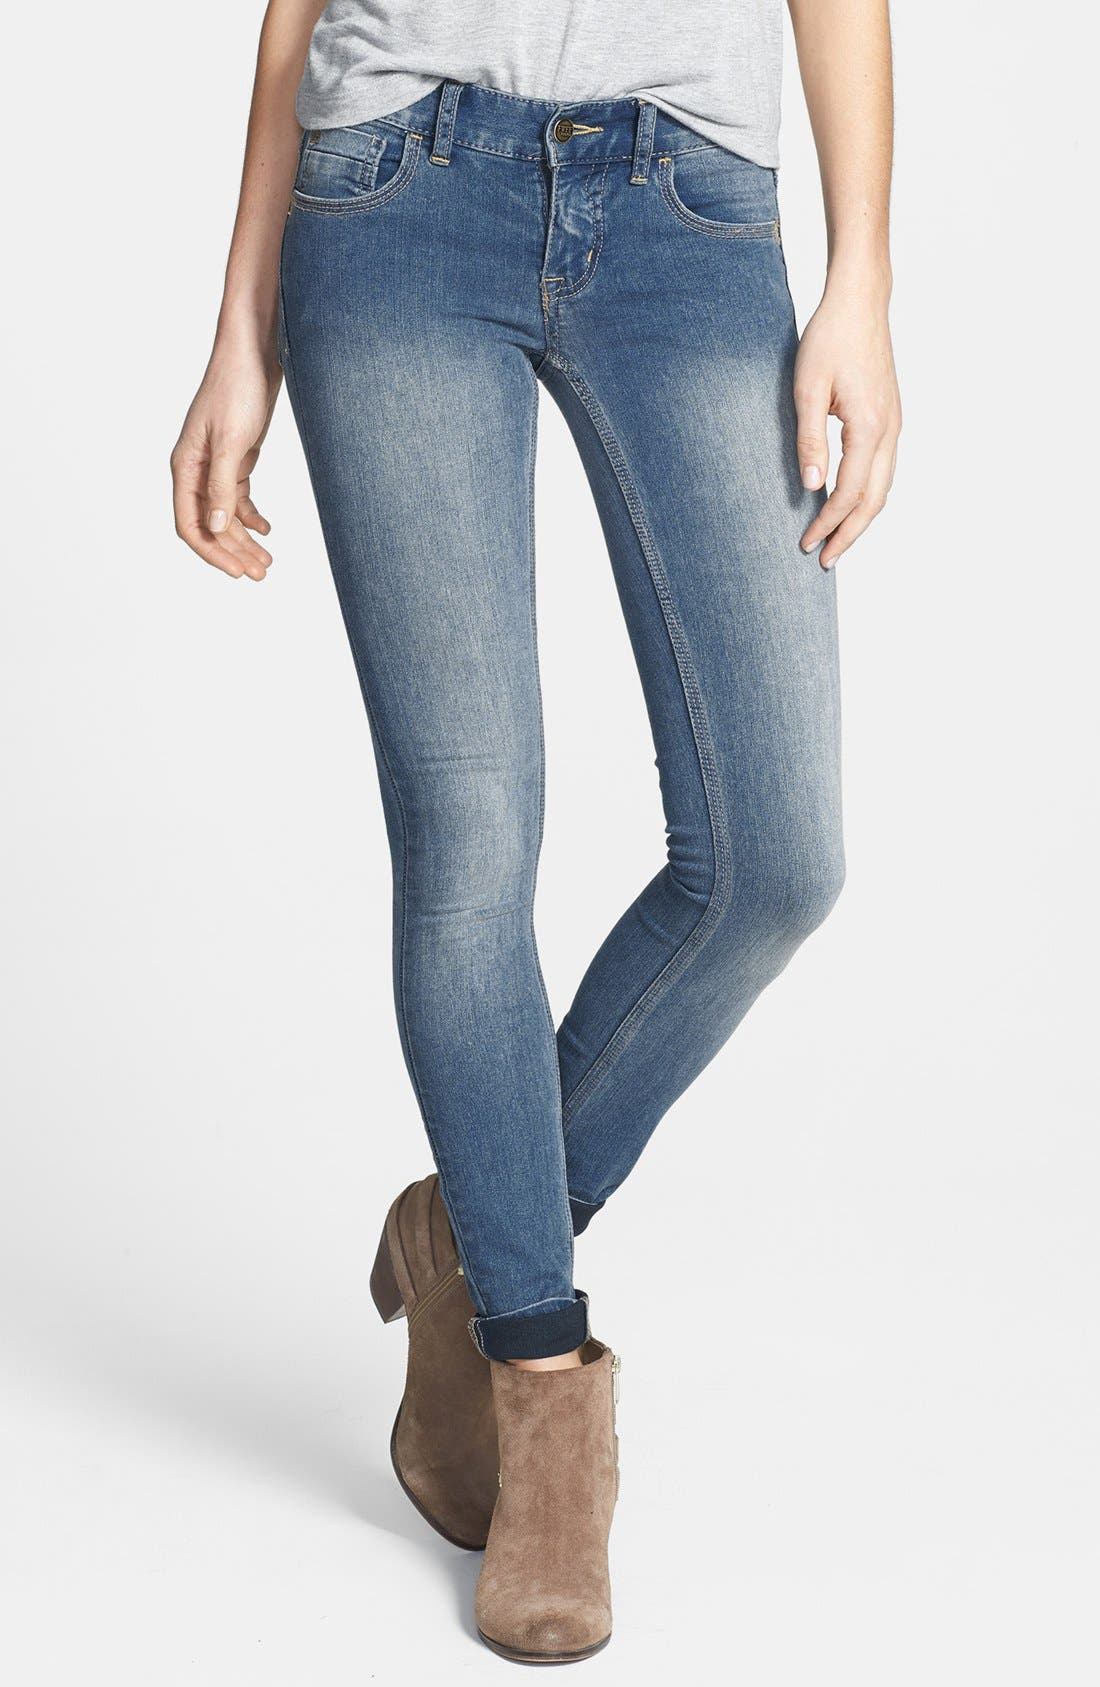 Alternate Image 1 Selected - Free People Lightweight Stretch Skinny Jeans (Ocean Blue)